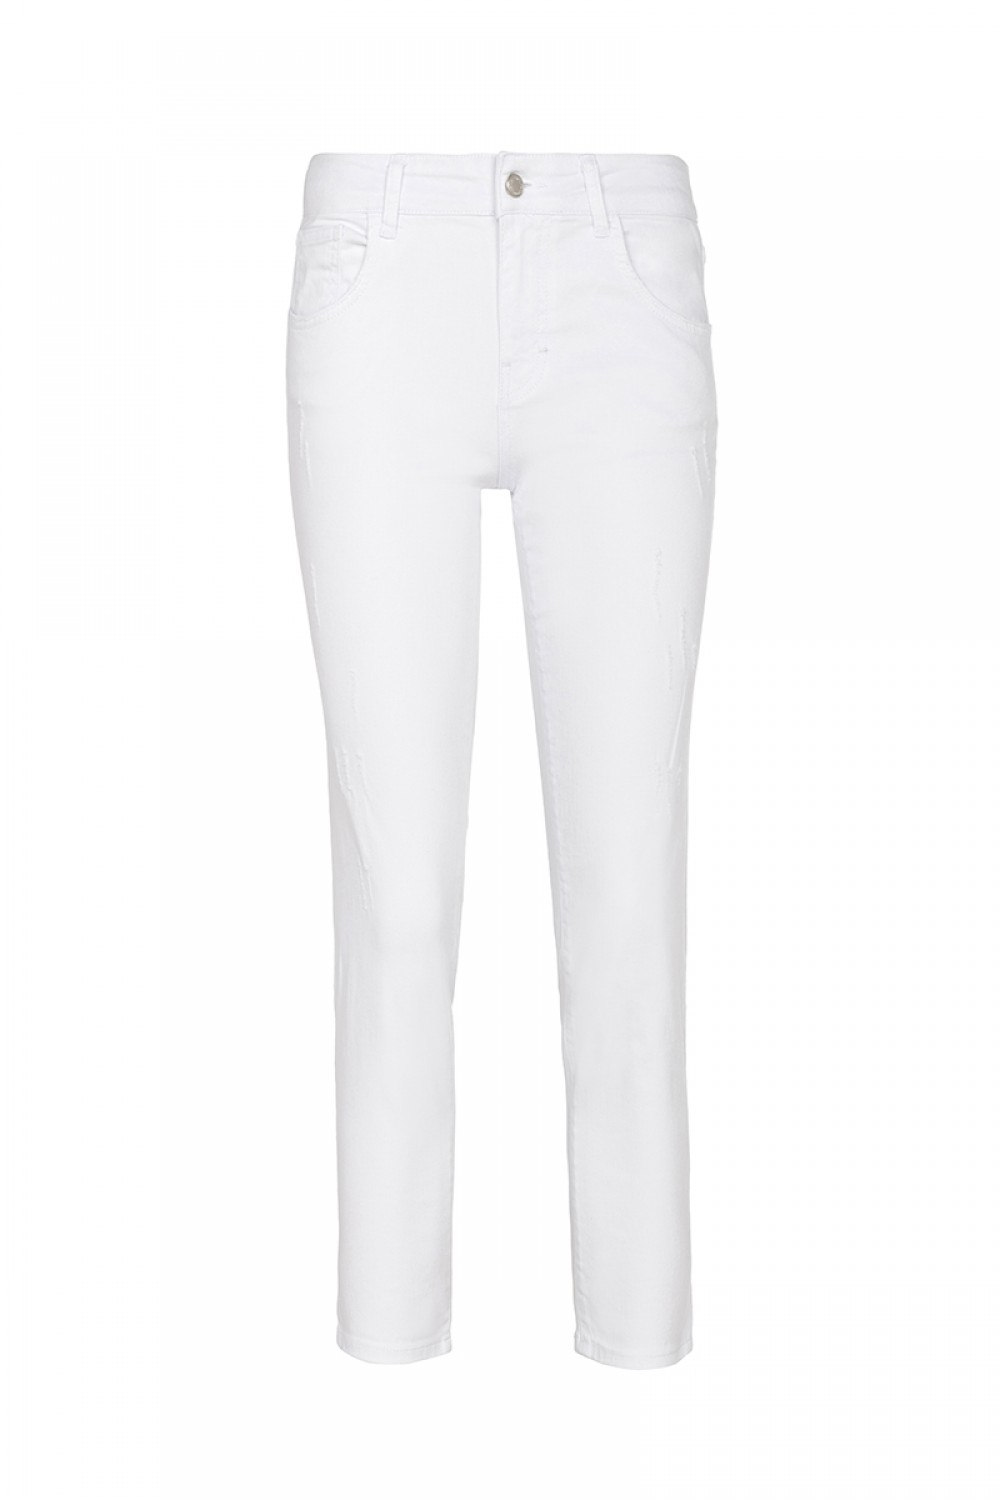 Straight Fit Denim Jean LENA Damen